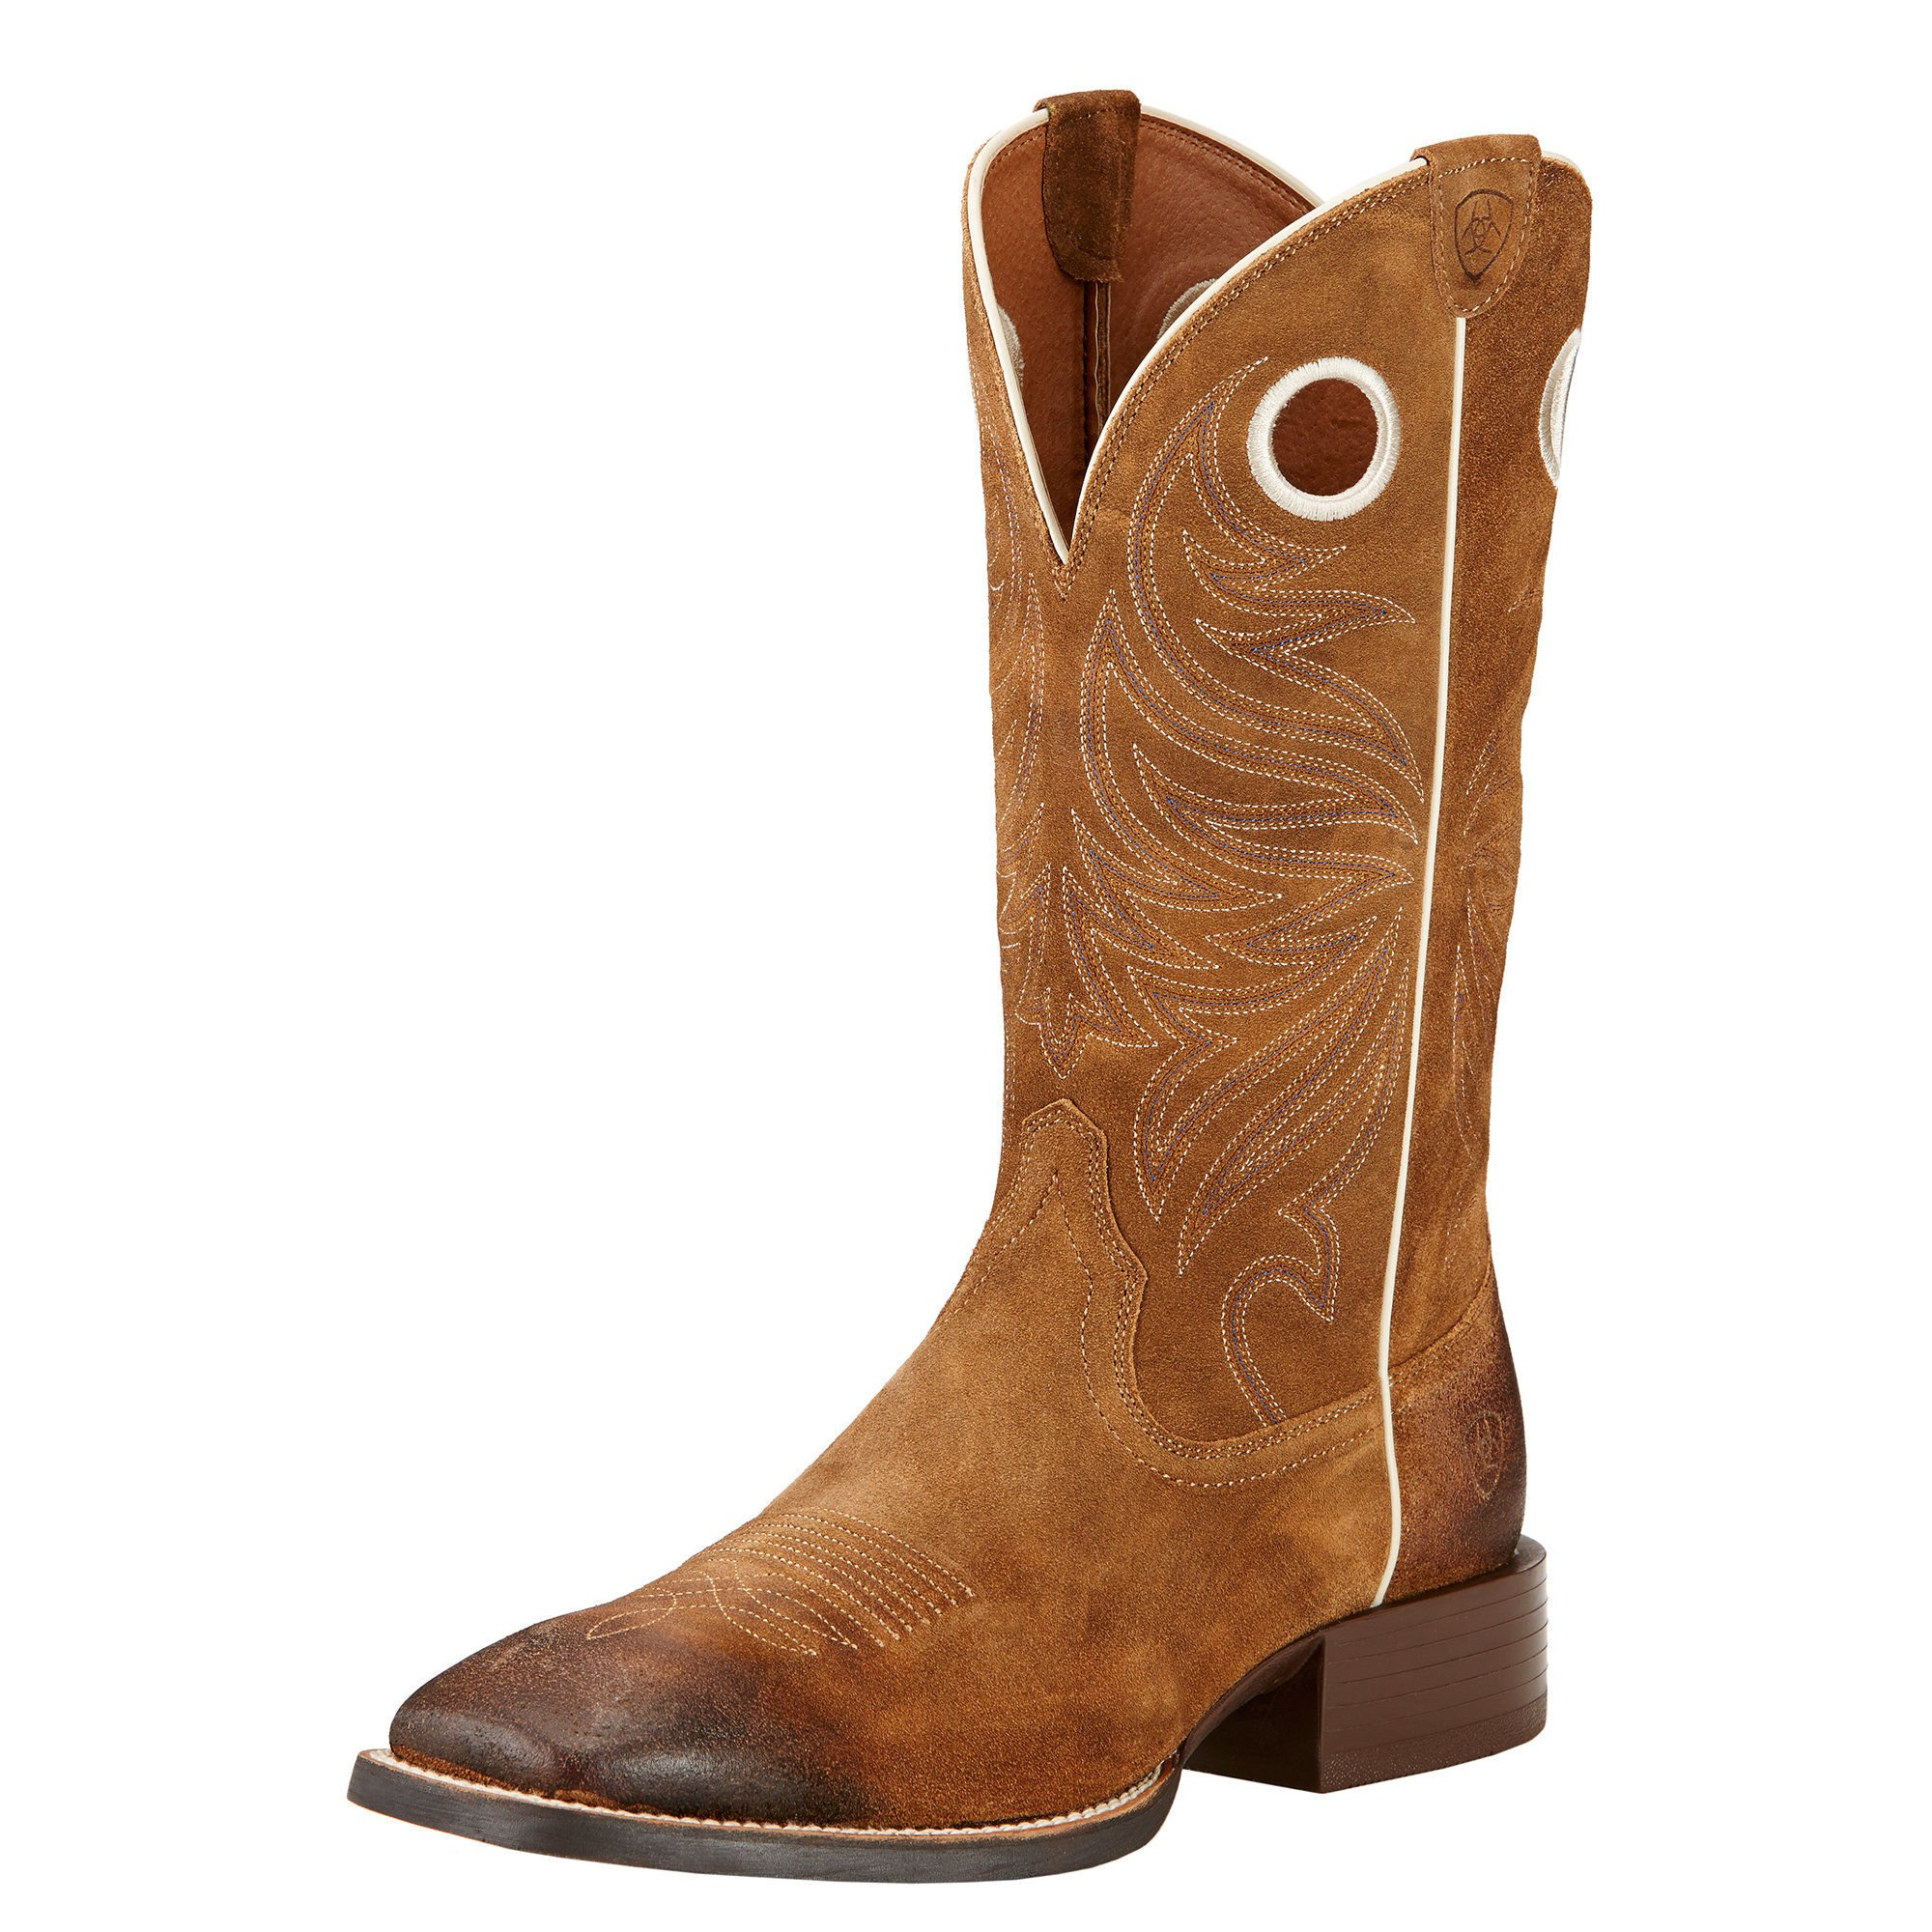 Ariat Mens Sport Rider Wide Square Toe Performance 11.5D Anitque Mocha Suede by Ariat